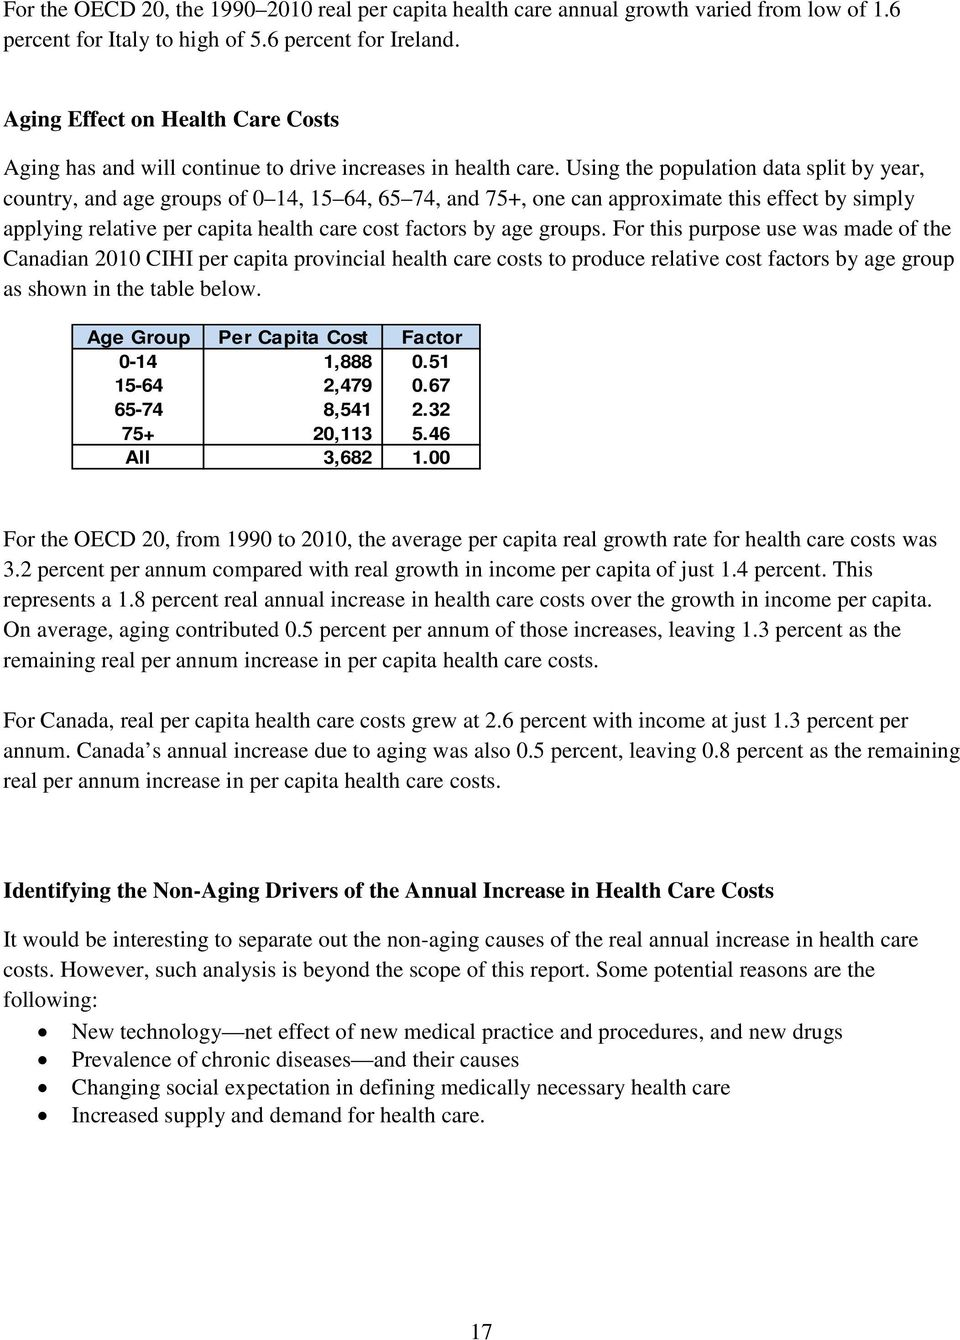 Using the population data split by year, country, and age groups of 0 14, 15 64, 65 74, and 75+, one can approximate this effect by simply applying relative per capita health care cost factors by age